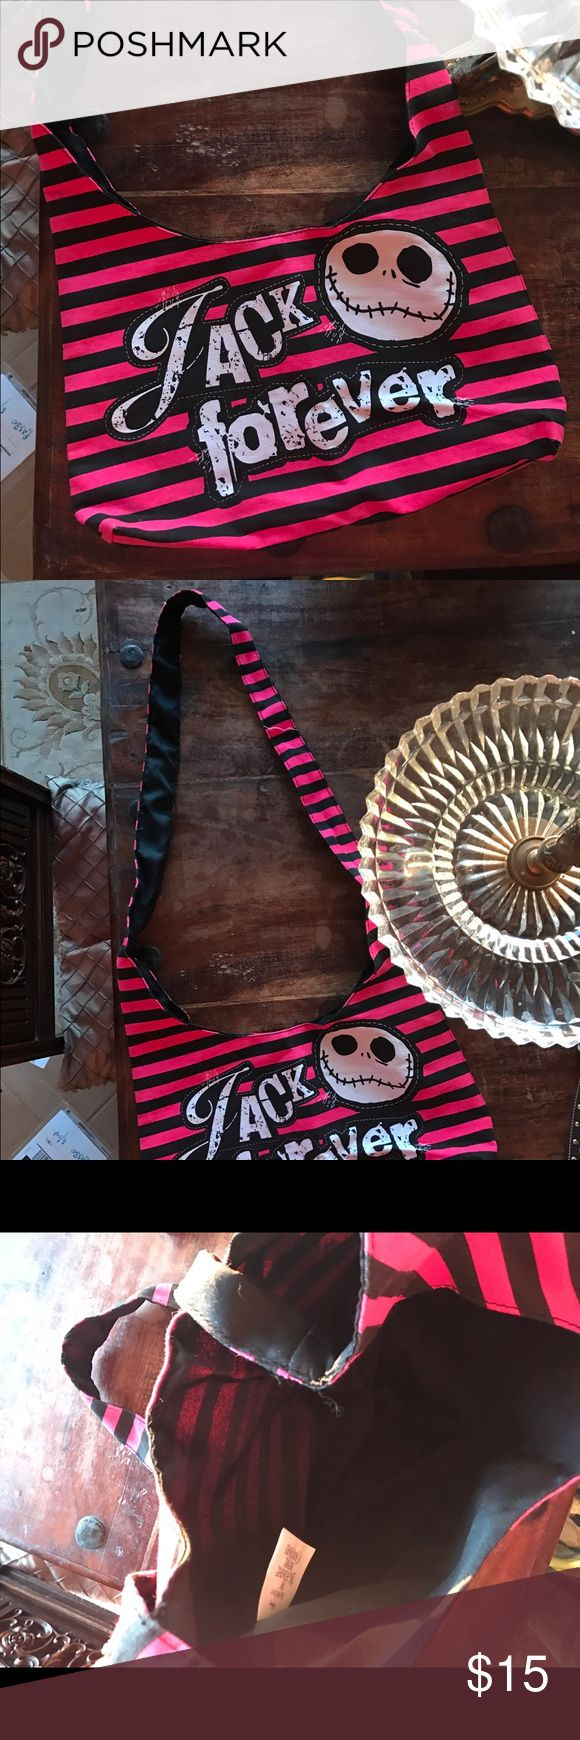 Nightmare Before Christmas Purse Disney's Pink and black striped Nightmare Before Christmas Jack Skellington Purse.  Measurements: Strap Drop- 21 inches Depth- 9 inches  Length- 15 inches Disney Bags Crossbody Bags